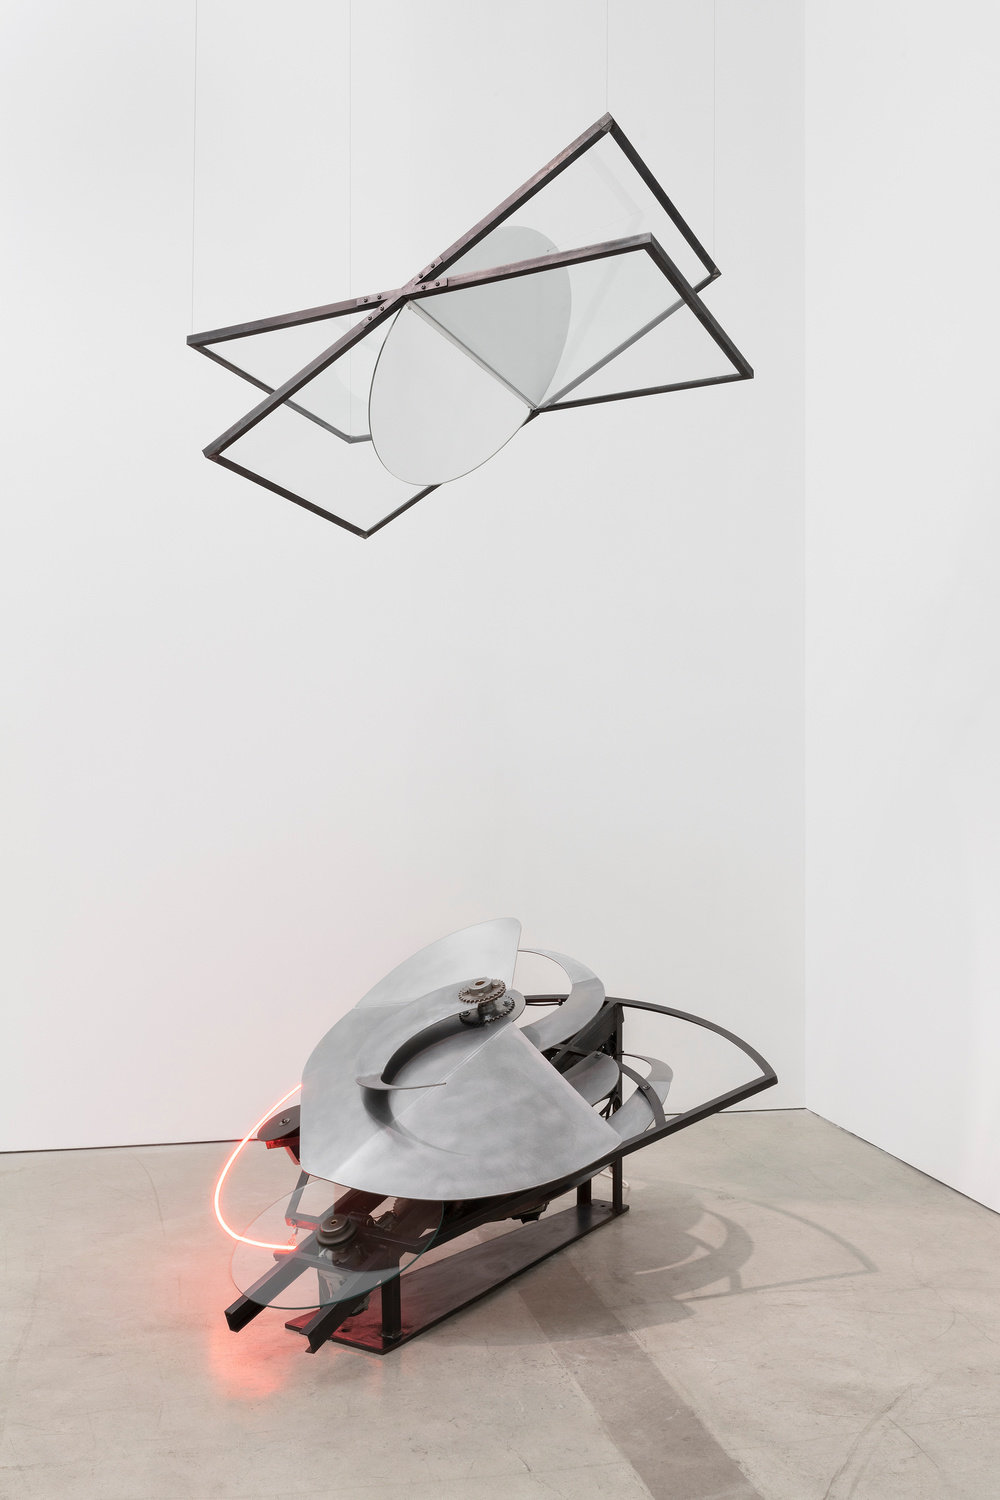 A kinetic sculpture with a neon strip by Alice Aycock